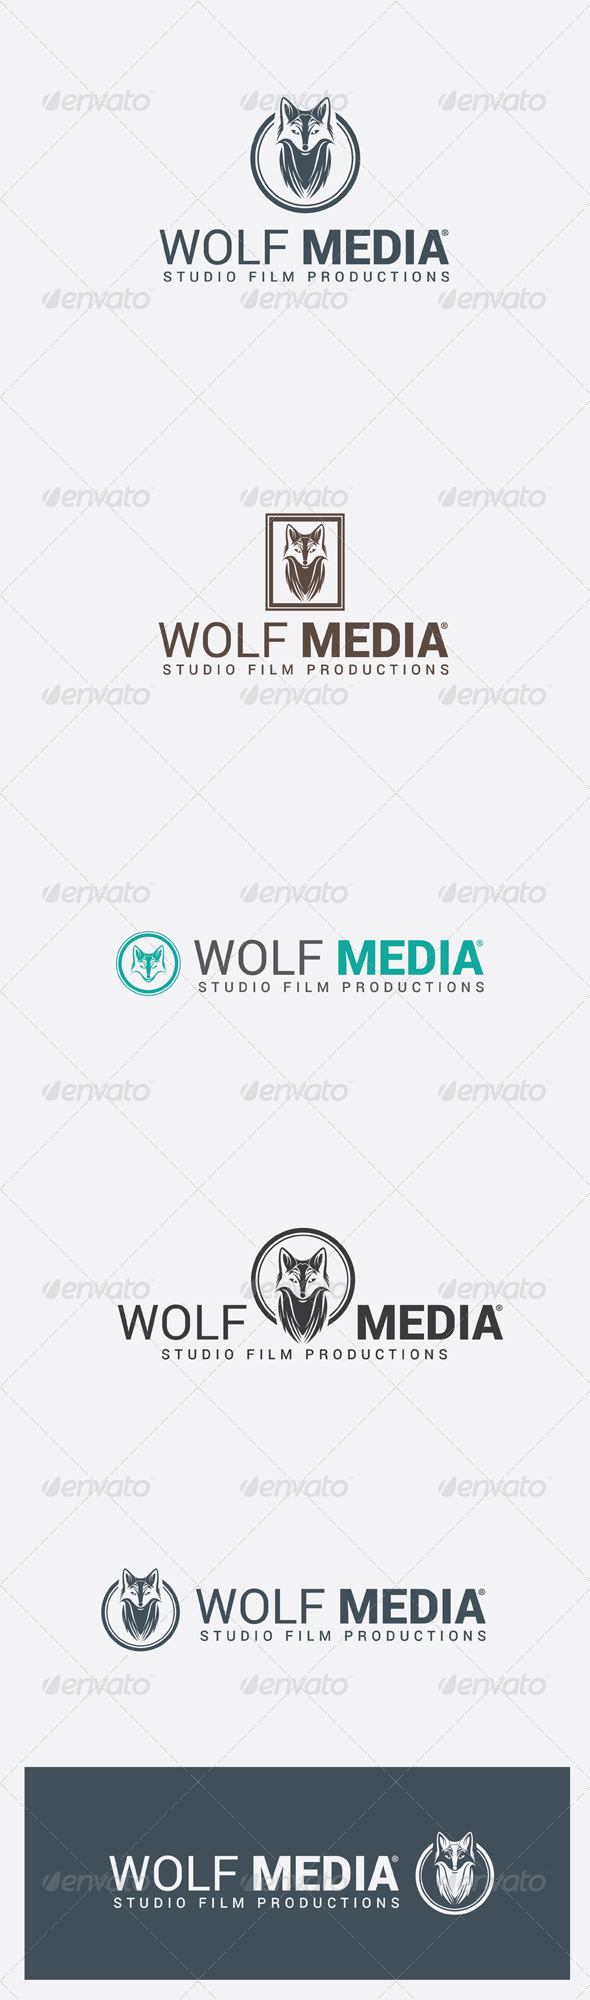 GraphicRiver Wolf Media Studio Film Production Logo Template 6314149